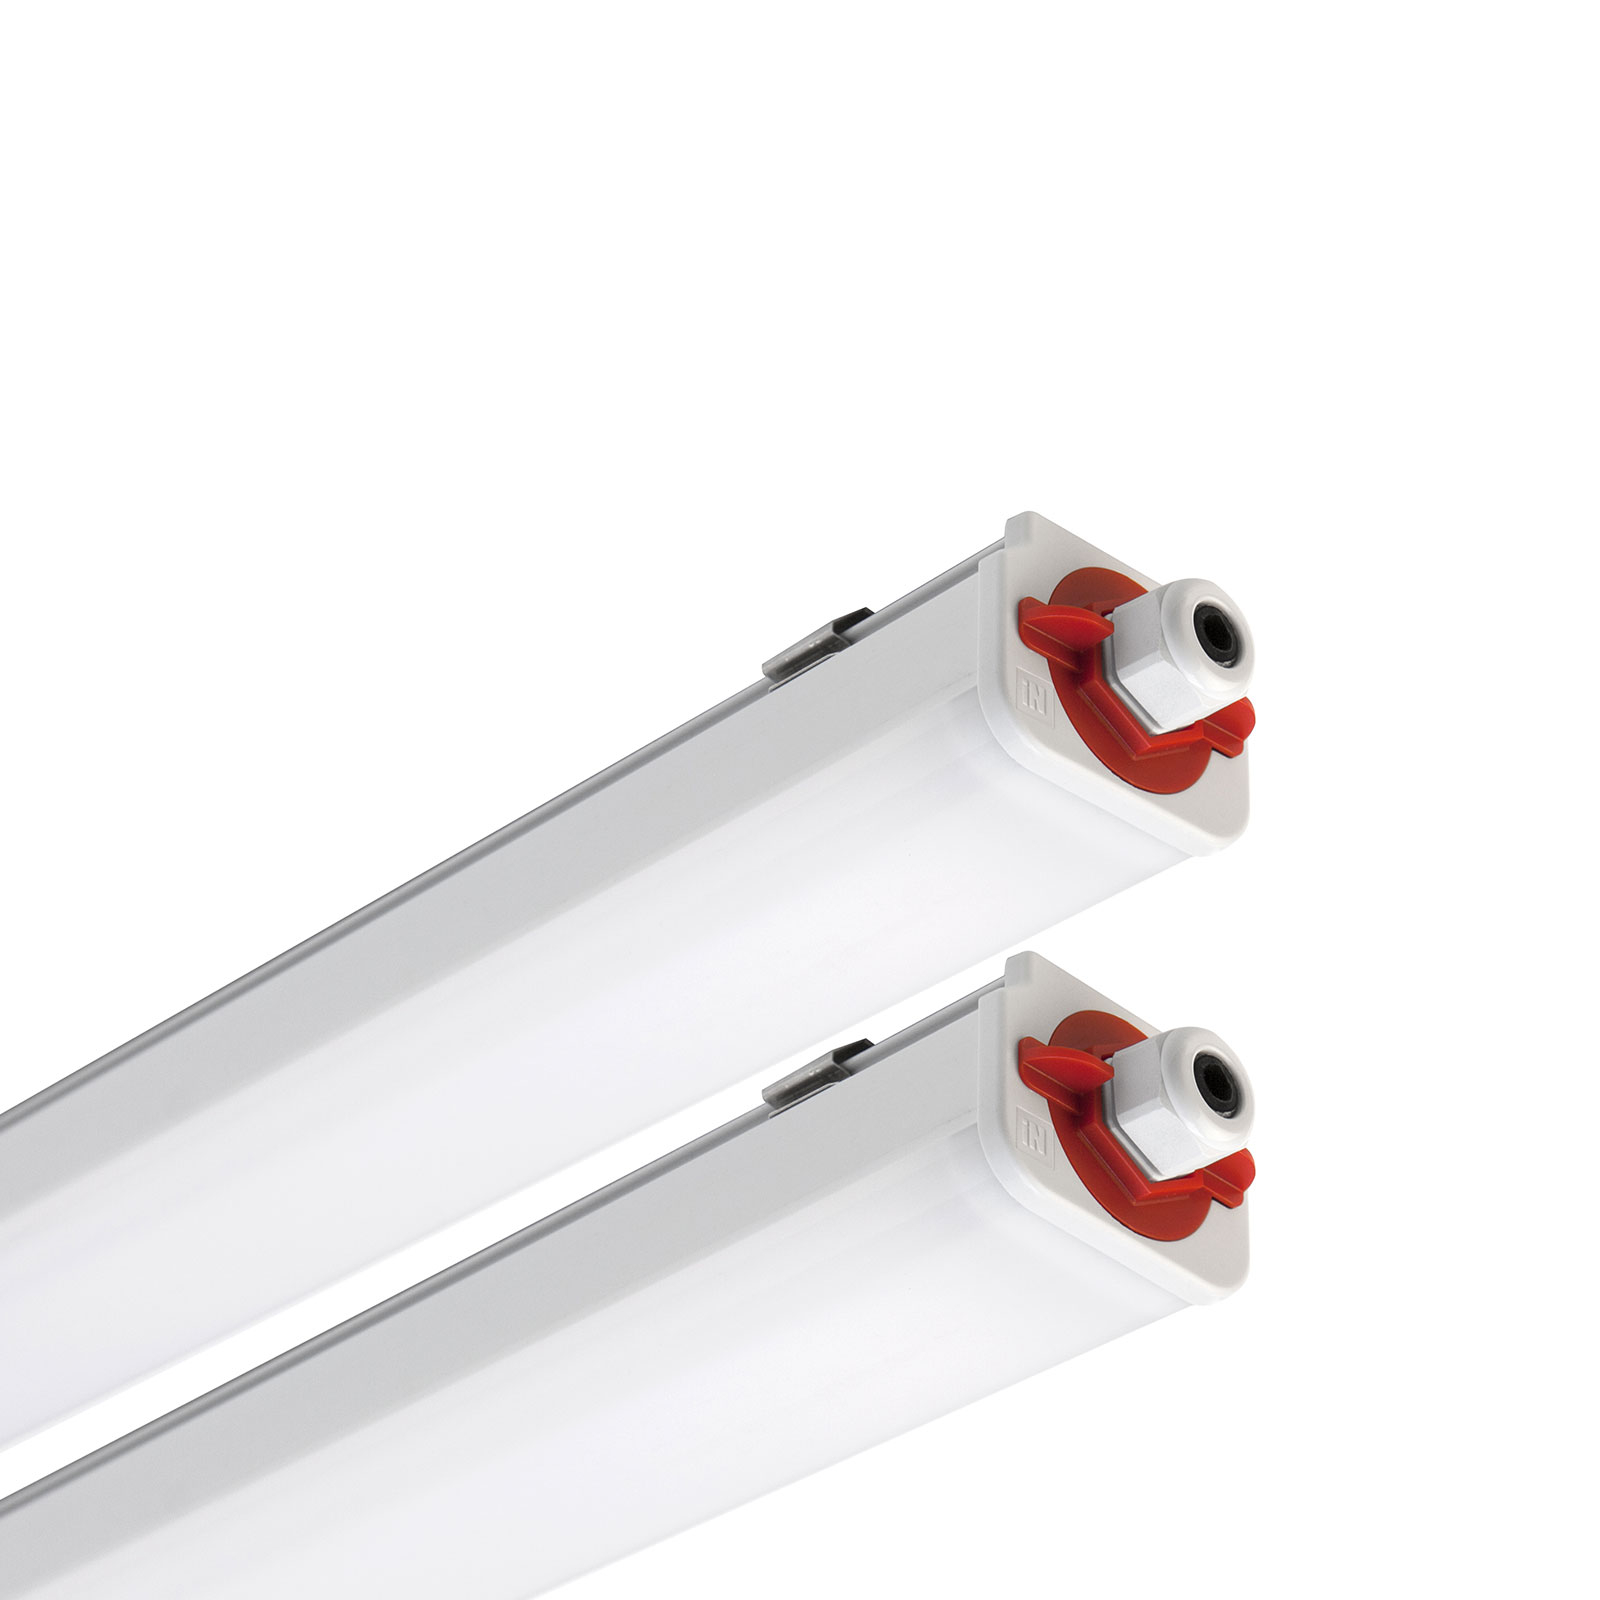 Plafoniera LED Norma+120 CL, 45W 6.795lm 120cm